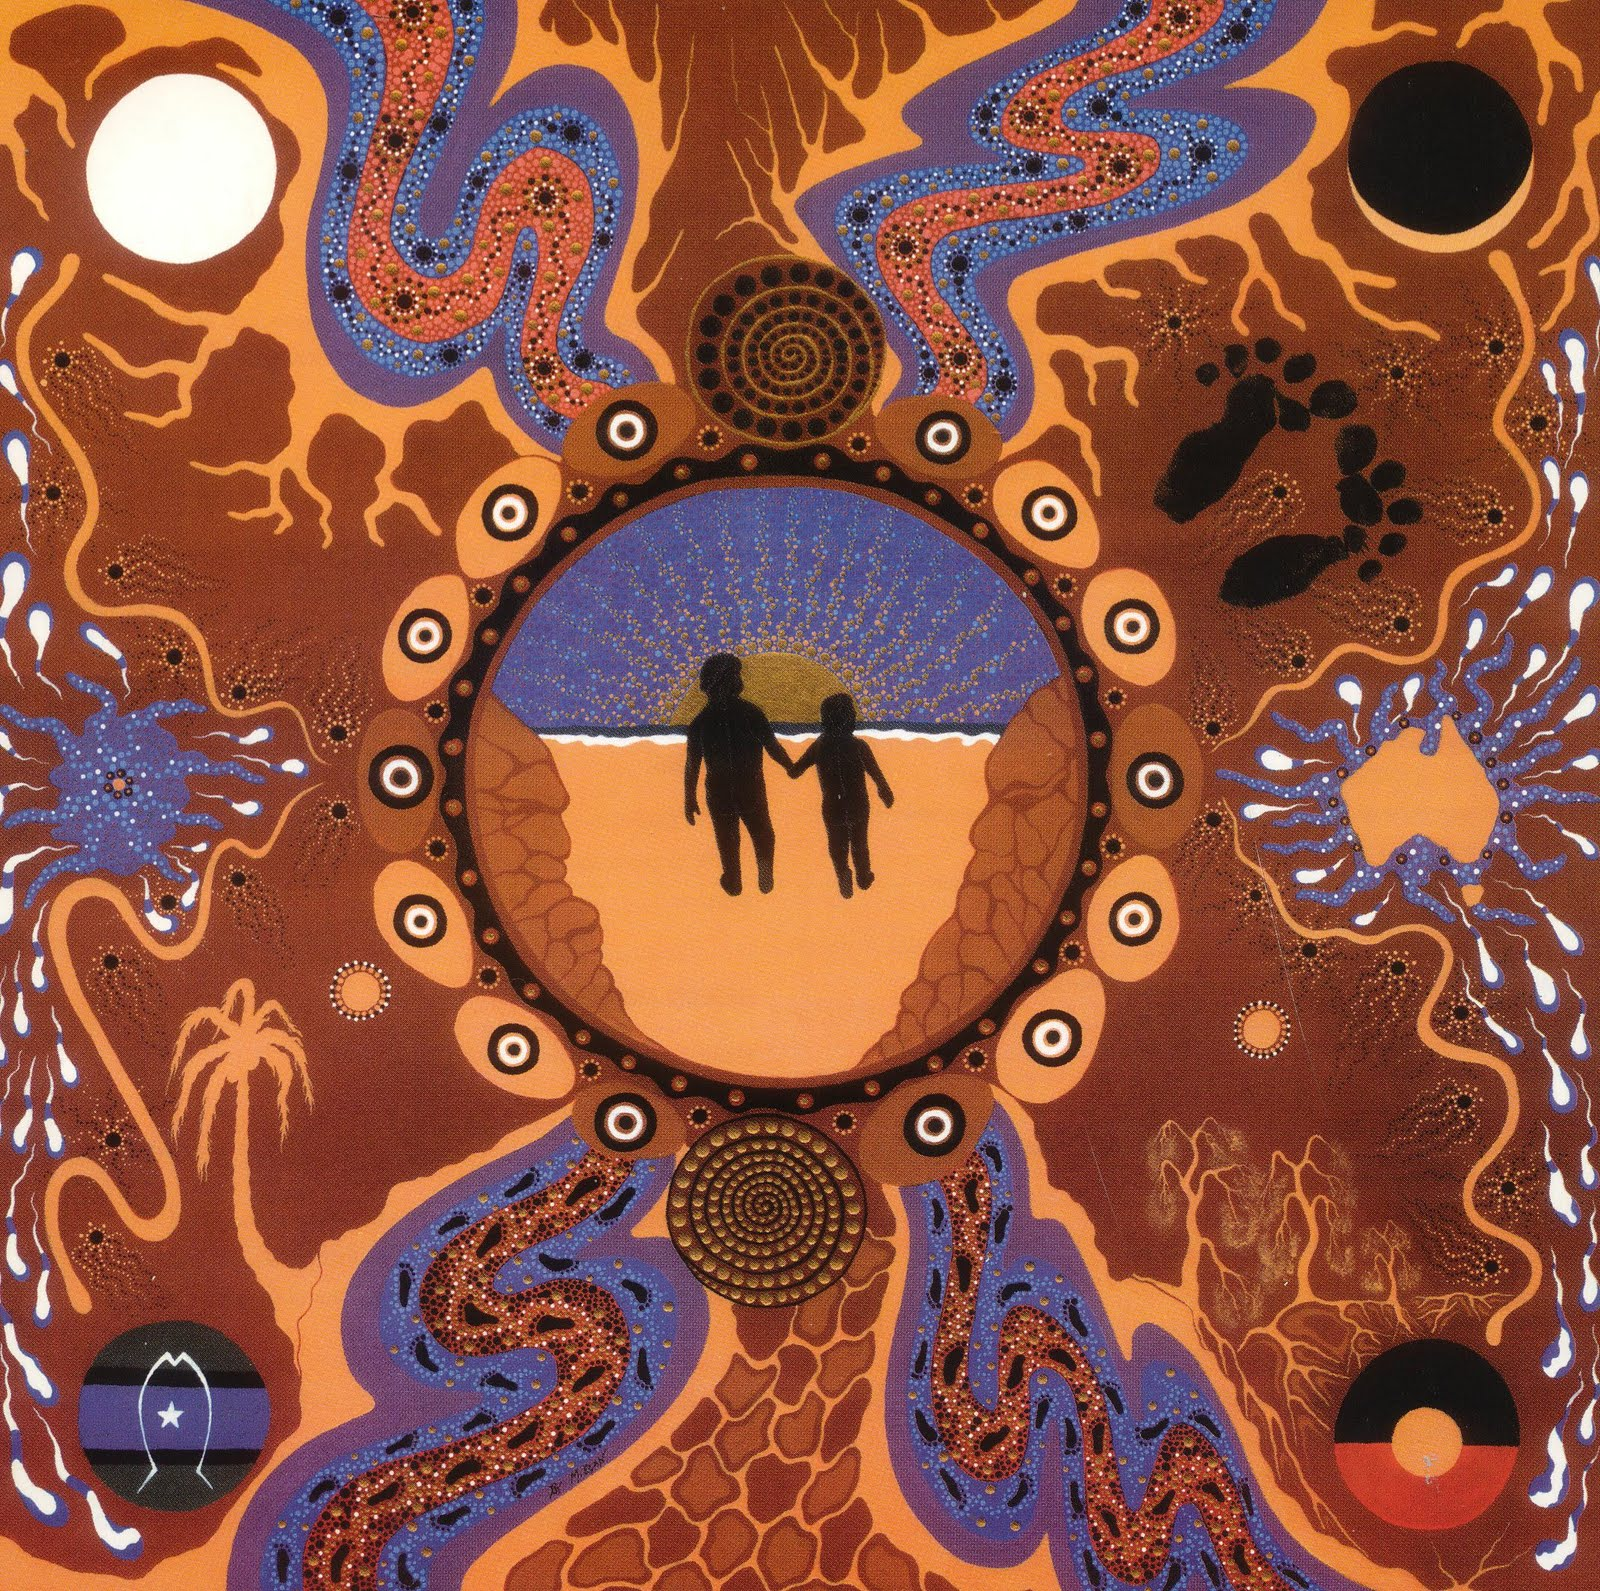 aboriginal beliefs Aboriginal people have attachments to the landscape stretching back many thousands of years find out about their ancient, living heritage.